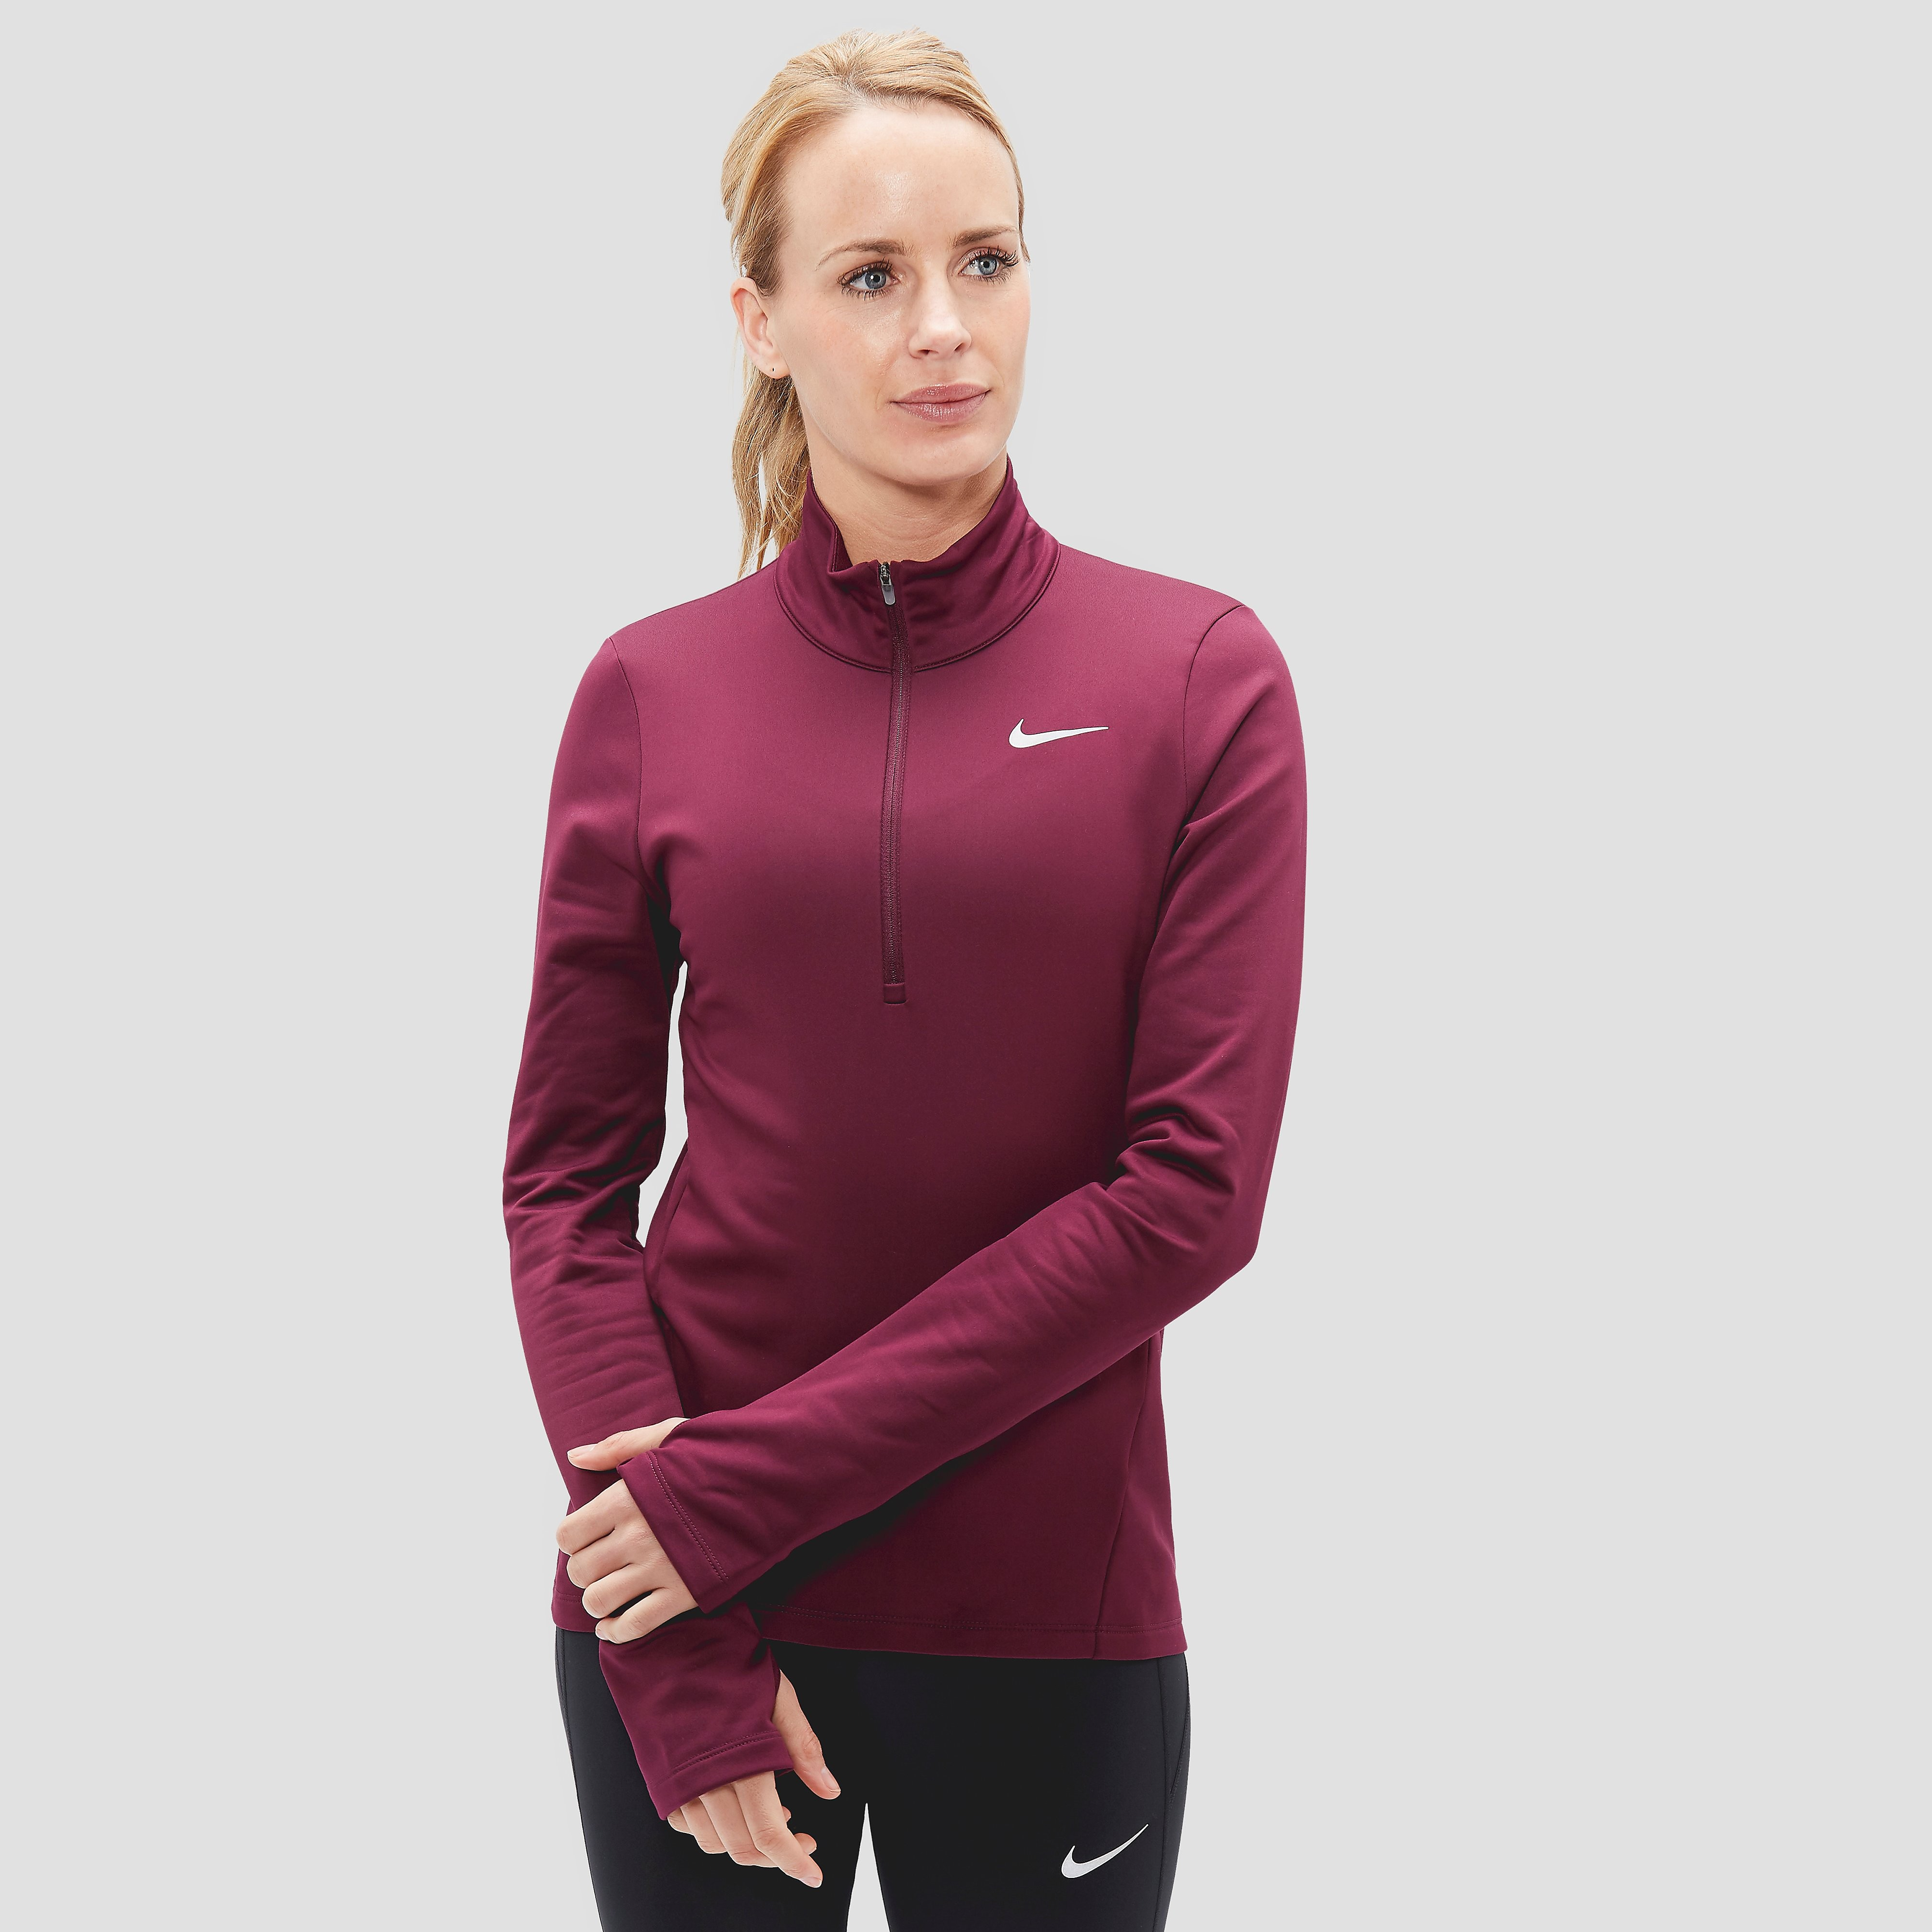 NIKE THERMA CORE HARDLOOPSHIRT ROOD DAMES